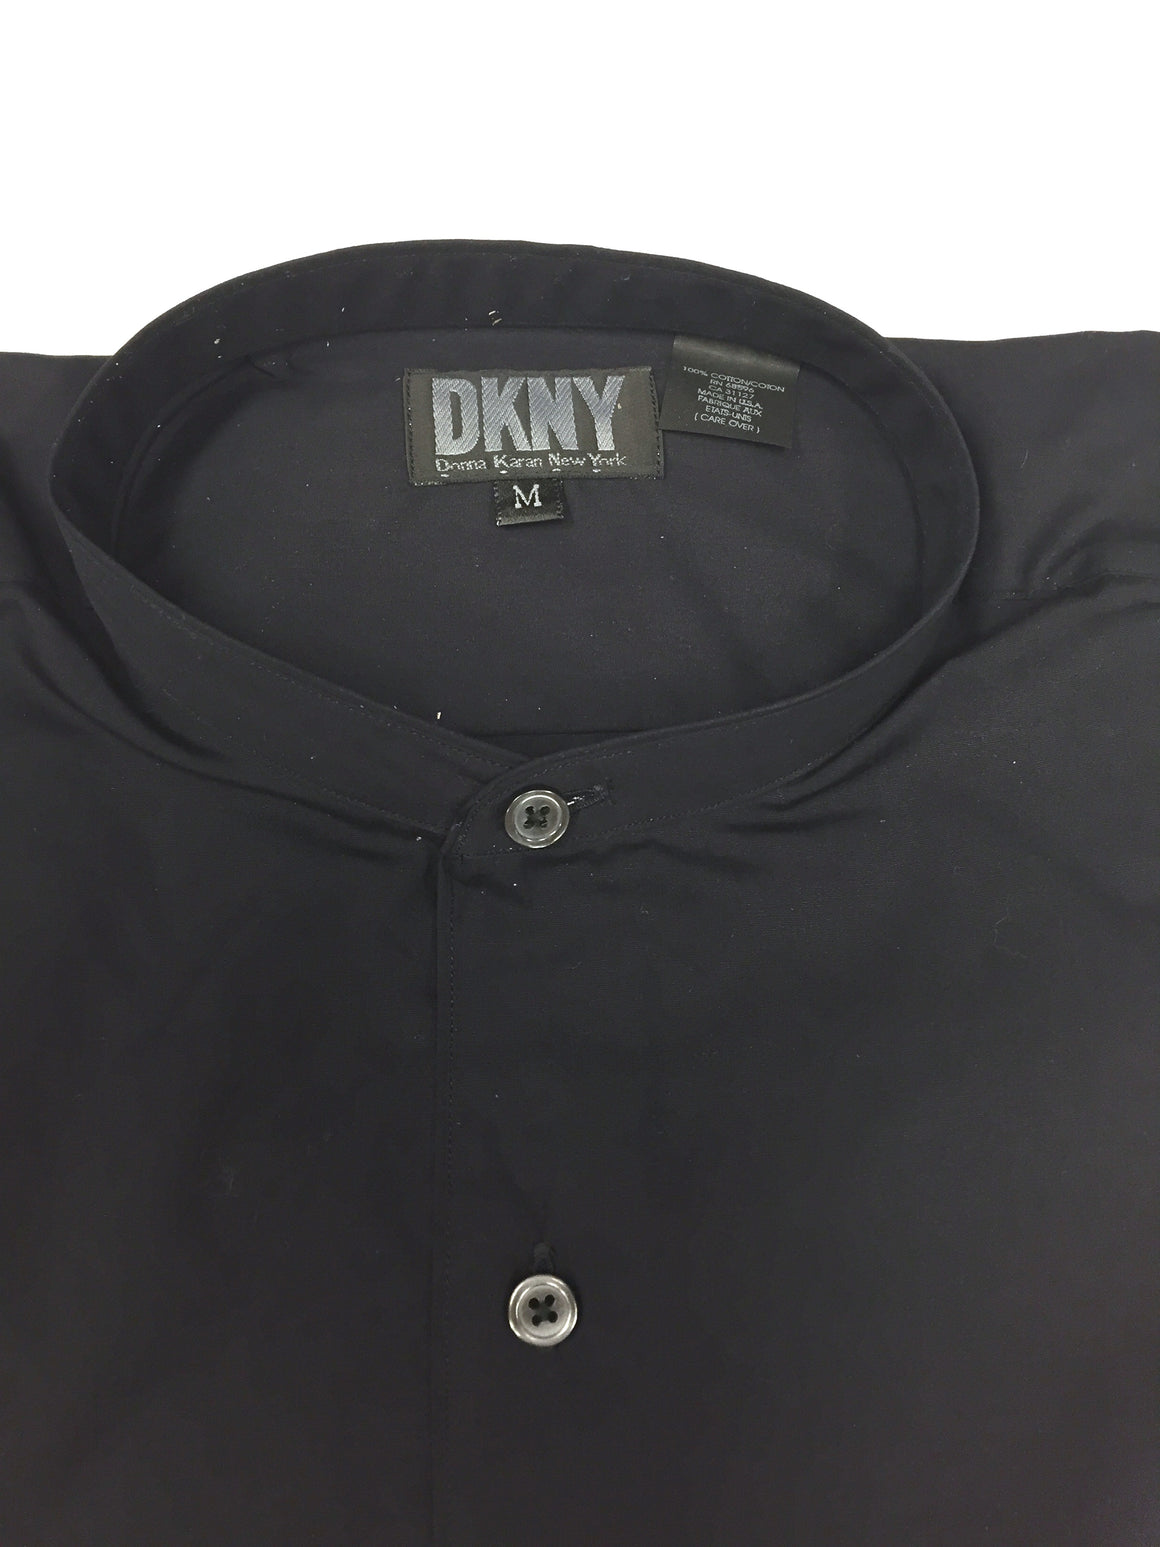 DONNA KARAN - DKNY  Midnite-Blue Cotton Mandarin Collar  Men's Long Sleeve Shirt  Size: M